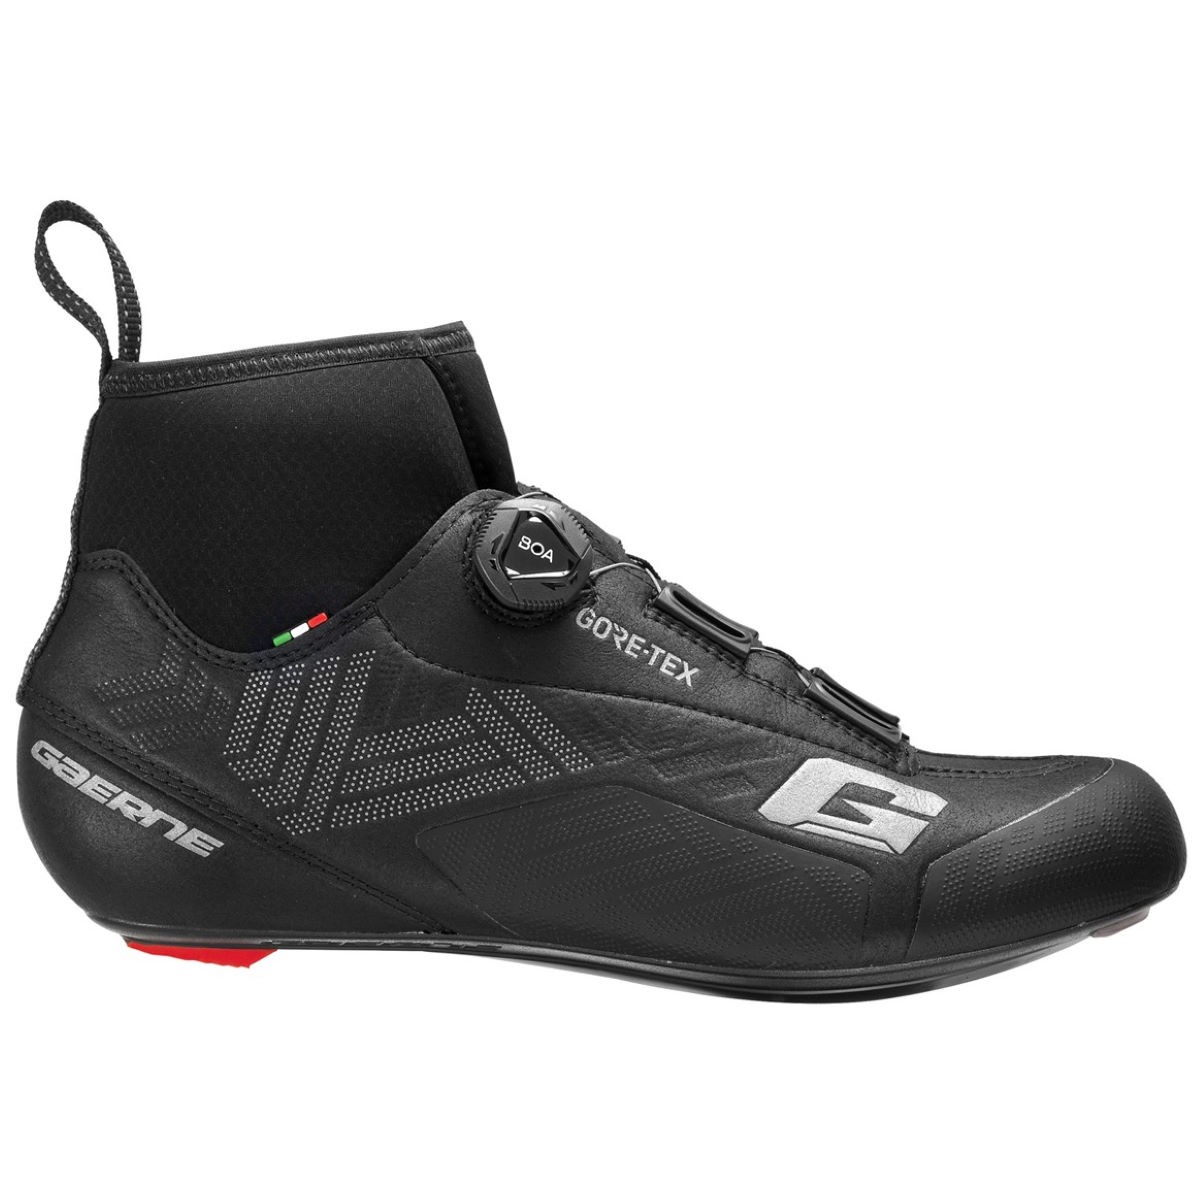 Gaerne Gaerne Icestorm Road GoreTex Boots   Cycling Shoes